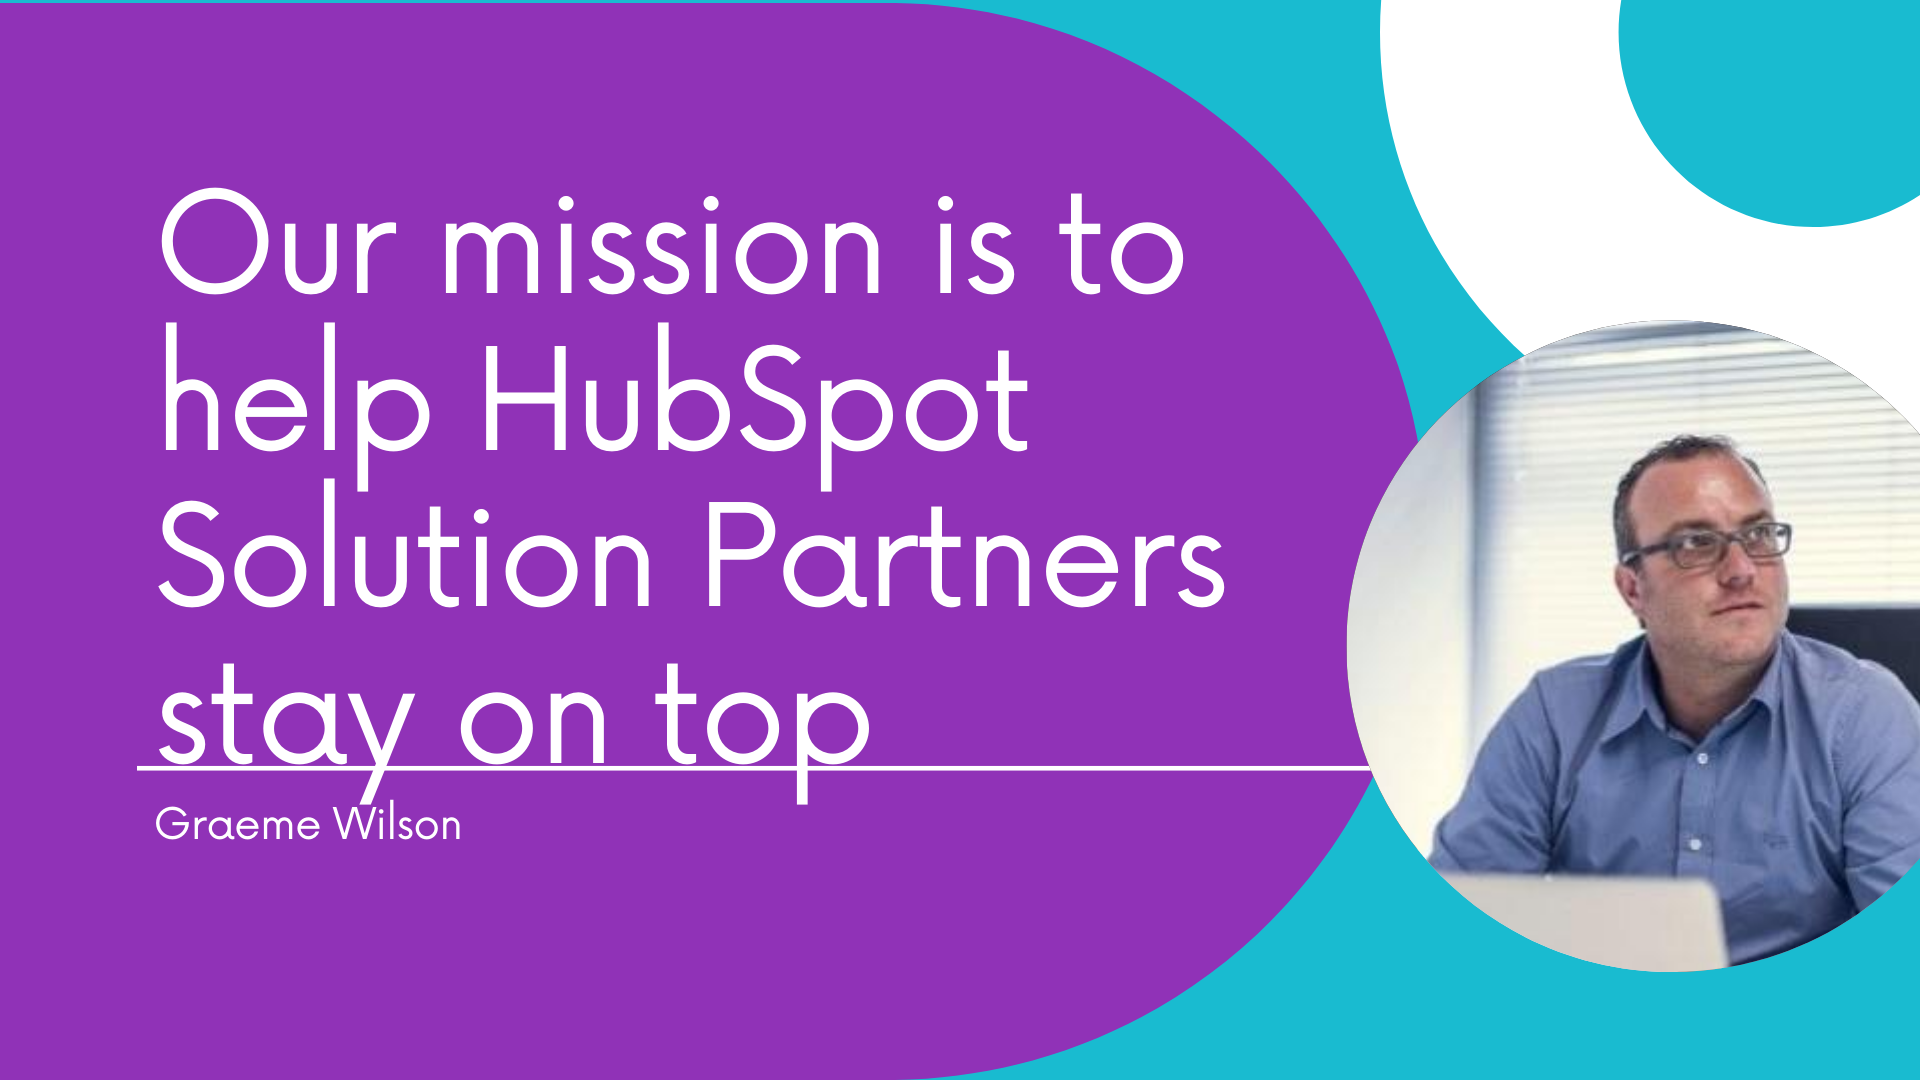 Our mission is to help HubSpot Solution Partners stay on top